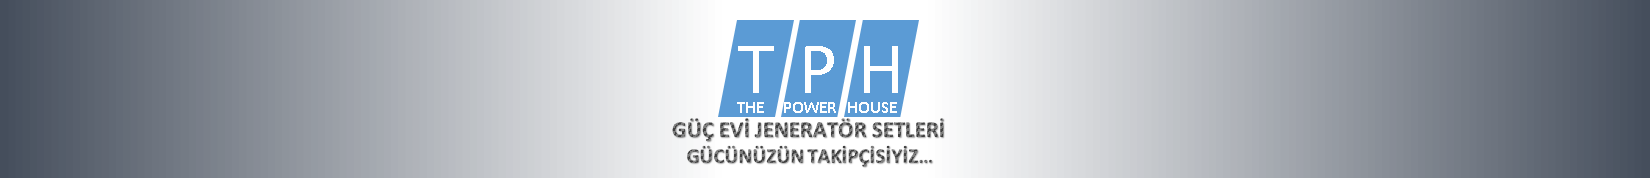 GÜÇEVİ JENERATÖR | THE POWER HOUSE SAN. VE TIC. LTD. STI.